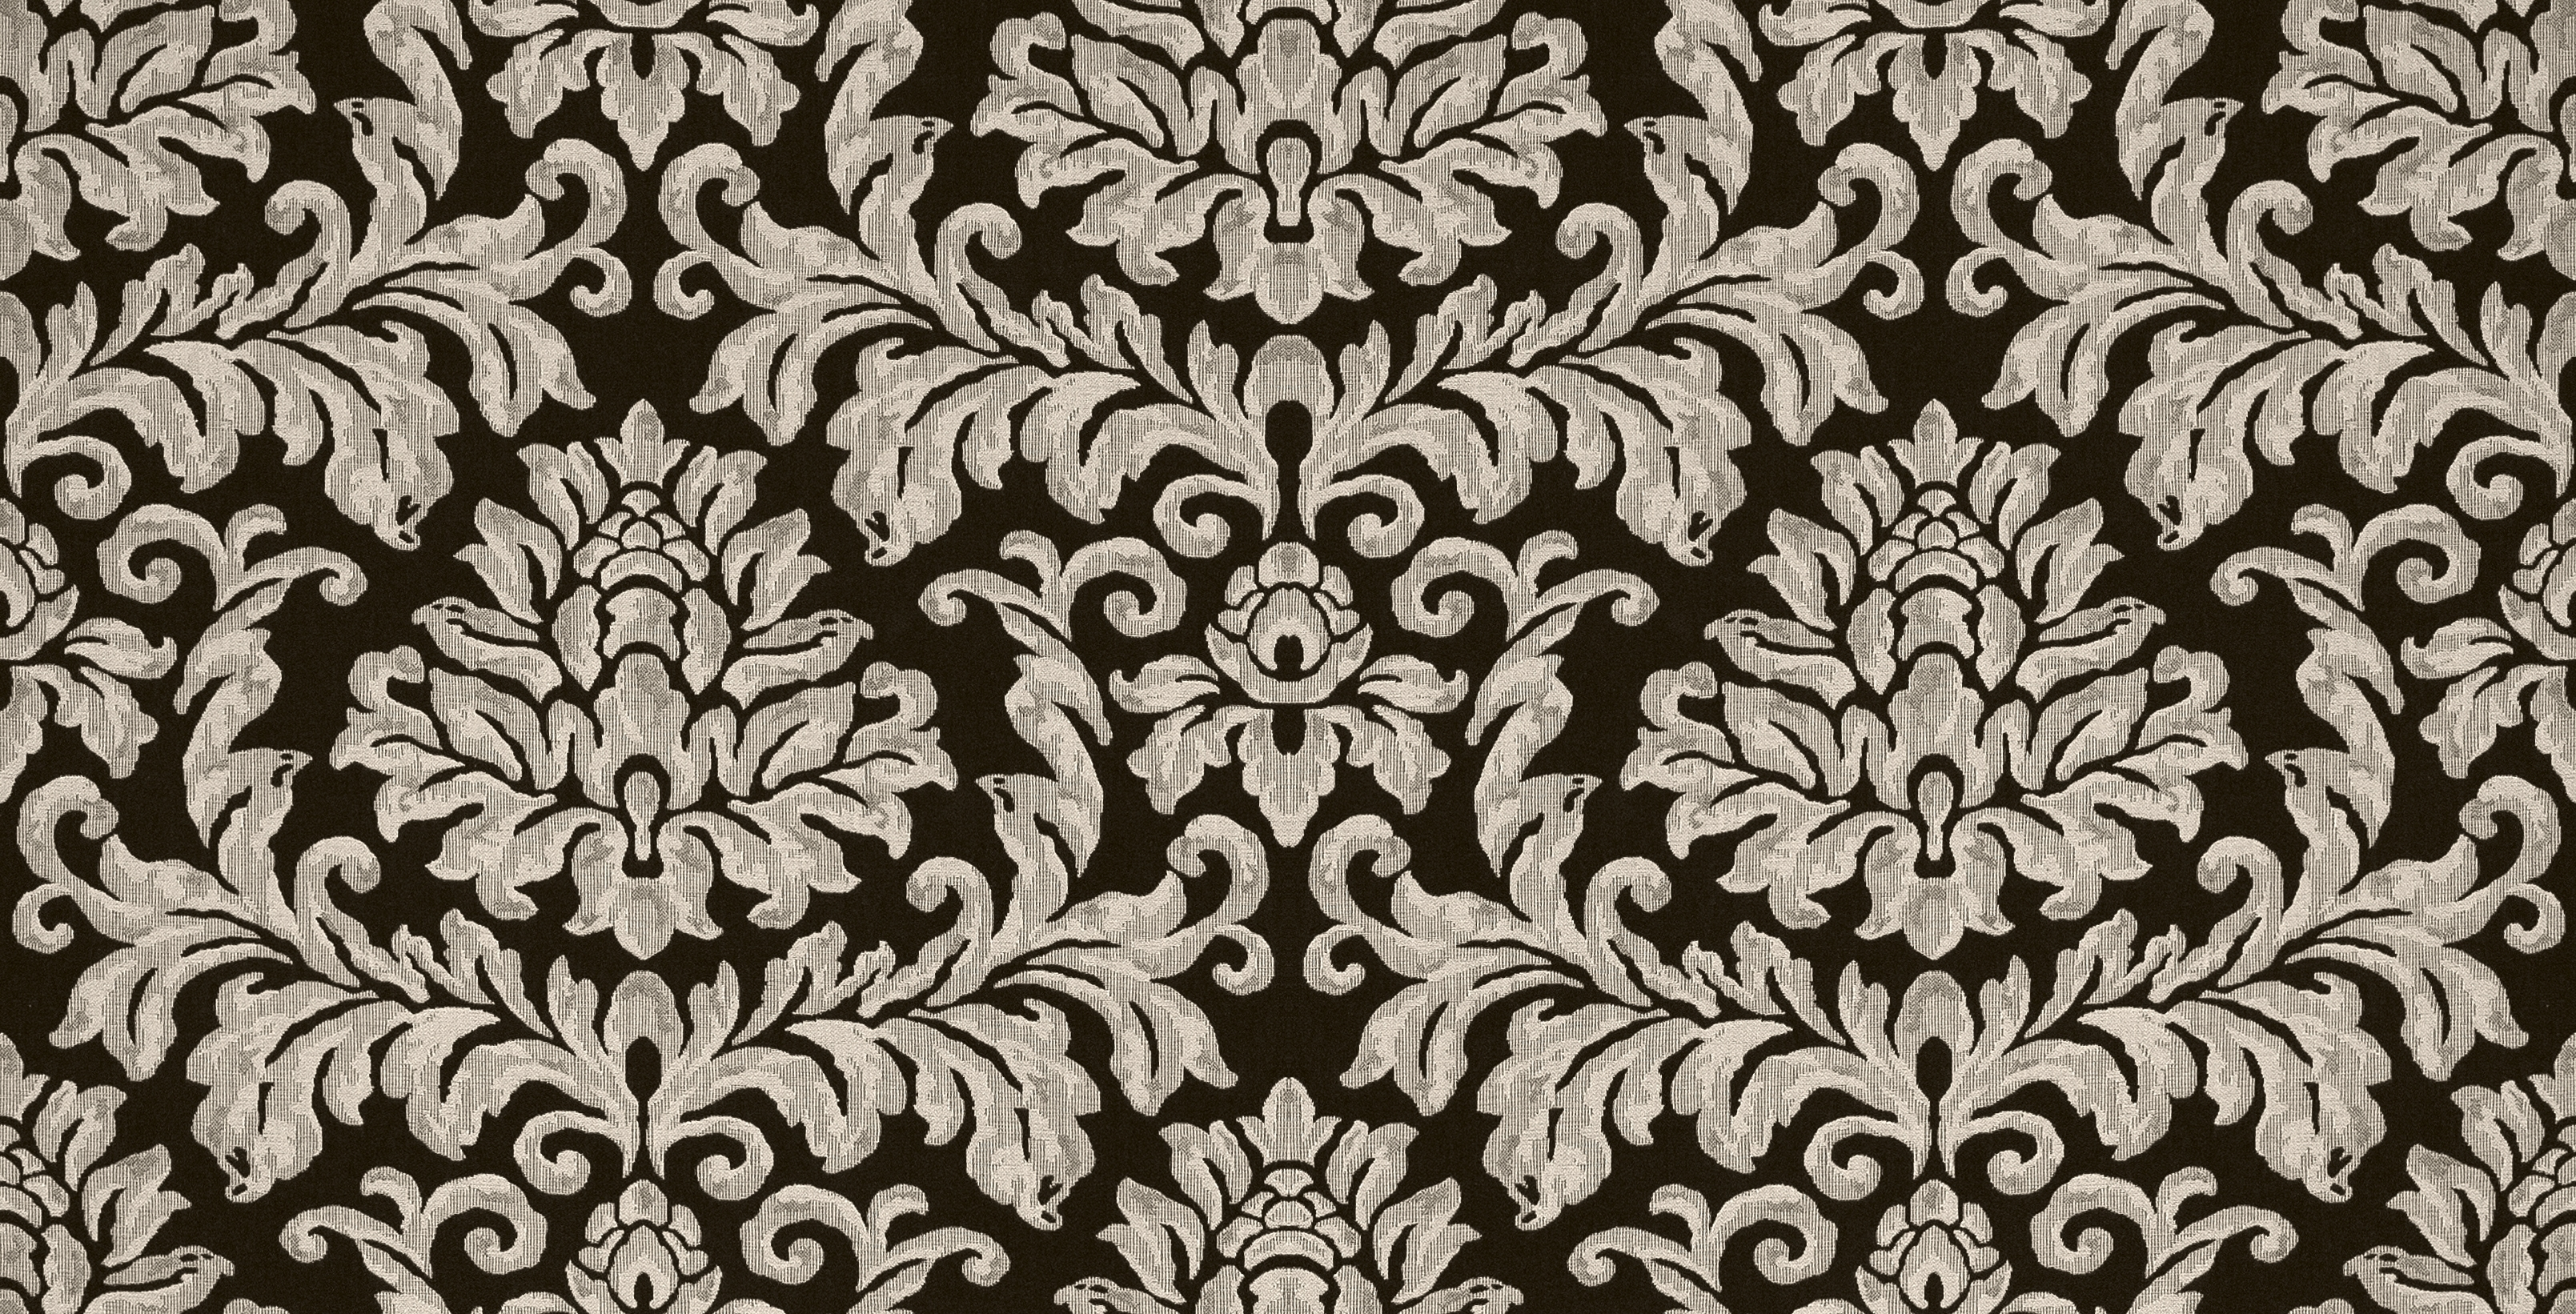 Damask Fabric Wall Cover For Most Up To Date Damask Fabric Wall Art (View 5 of 15)